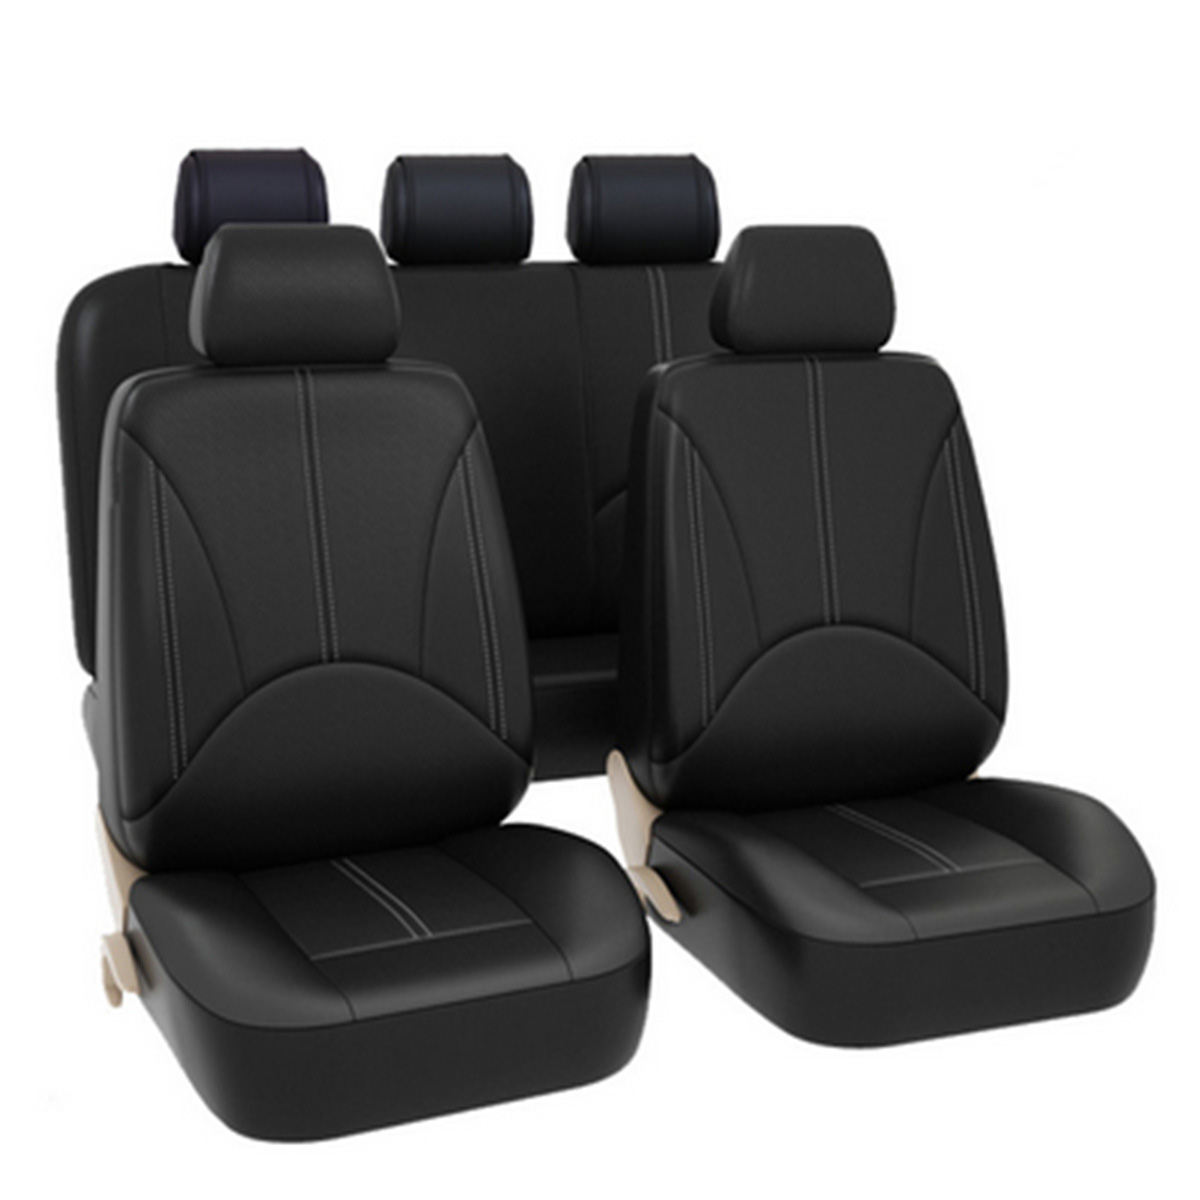 PU Car Auto Seat Cover Universal Front Back Head Rest Protector Wear resistant Will Not Fall Off